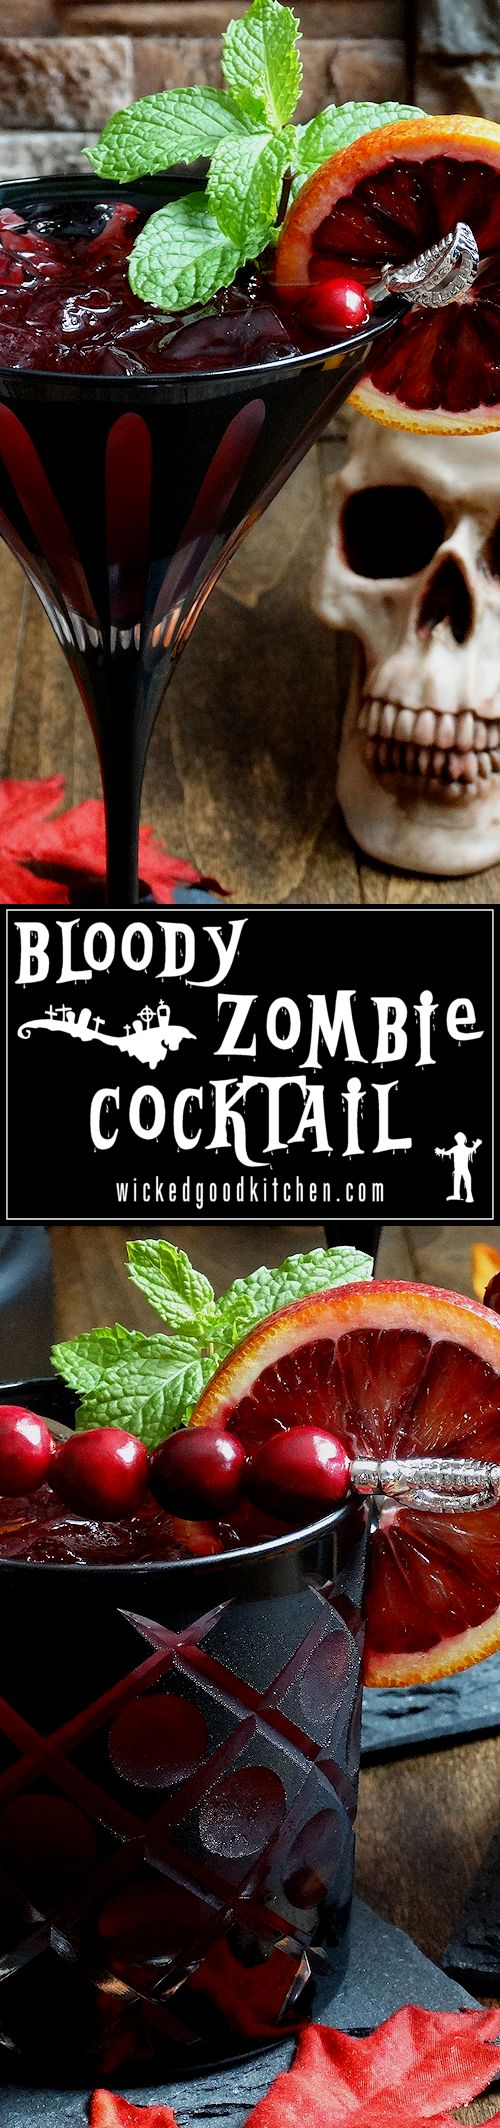 It's a Graveyard Smash! ~ Created from the classic tropical Zombie Cocktail but with an autumnal and bloody twist. Blood orange, cranberry and pomegranate juices along with blood orange liqueur make for a euphoric rum sip. Your party guests will rave! | holiday cocktail recipe